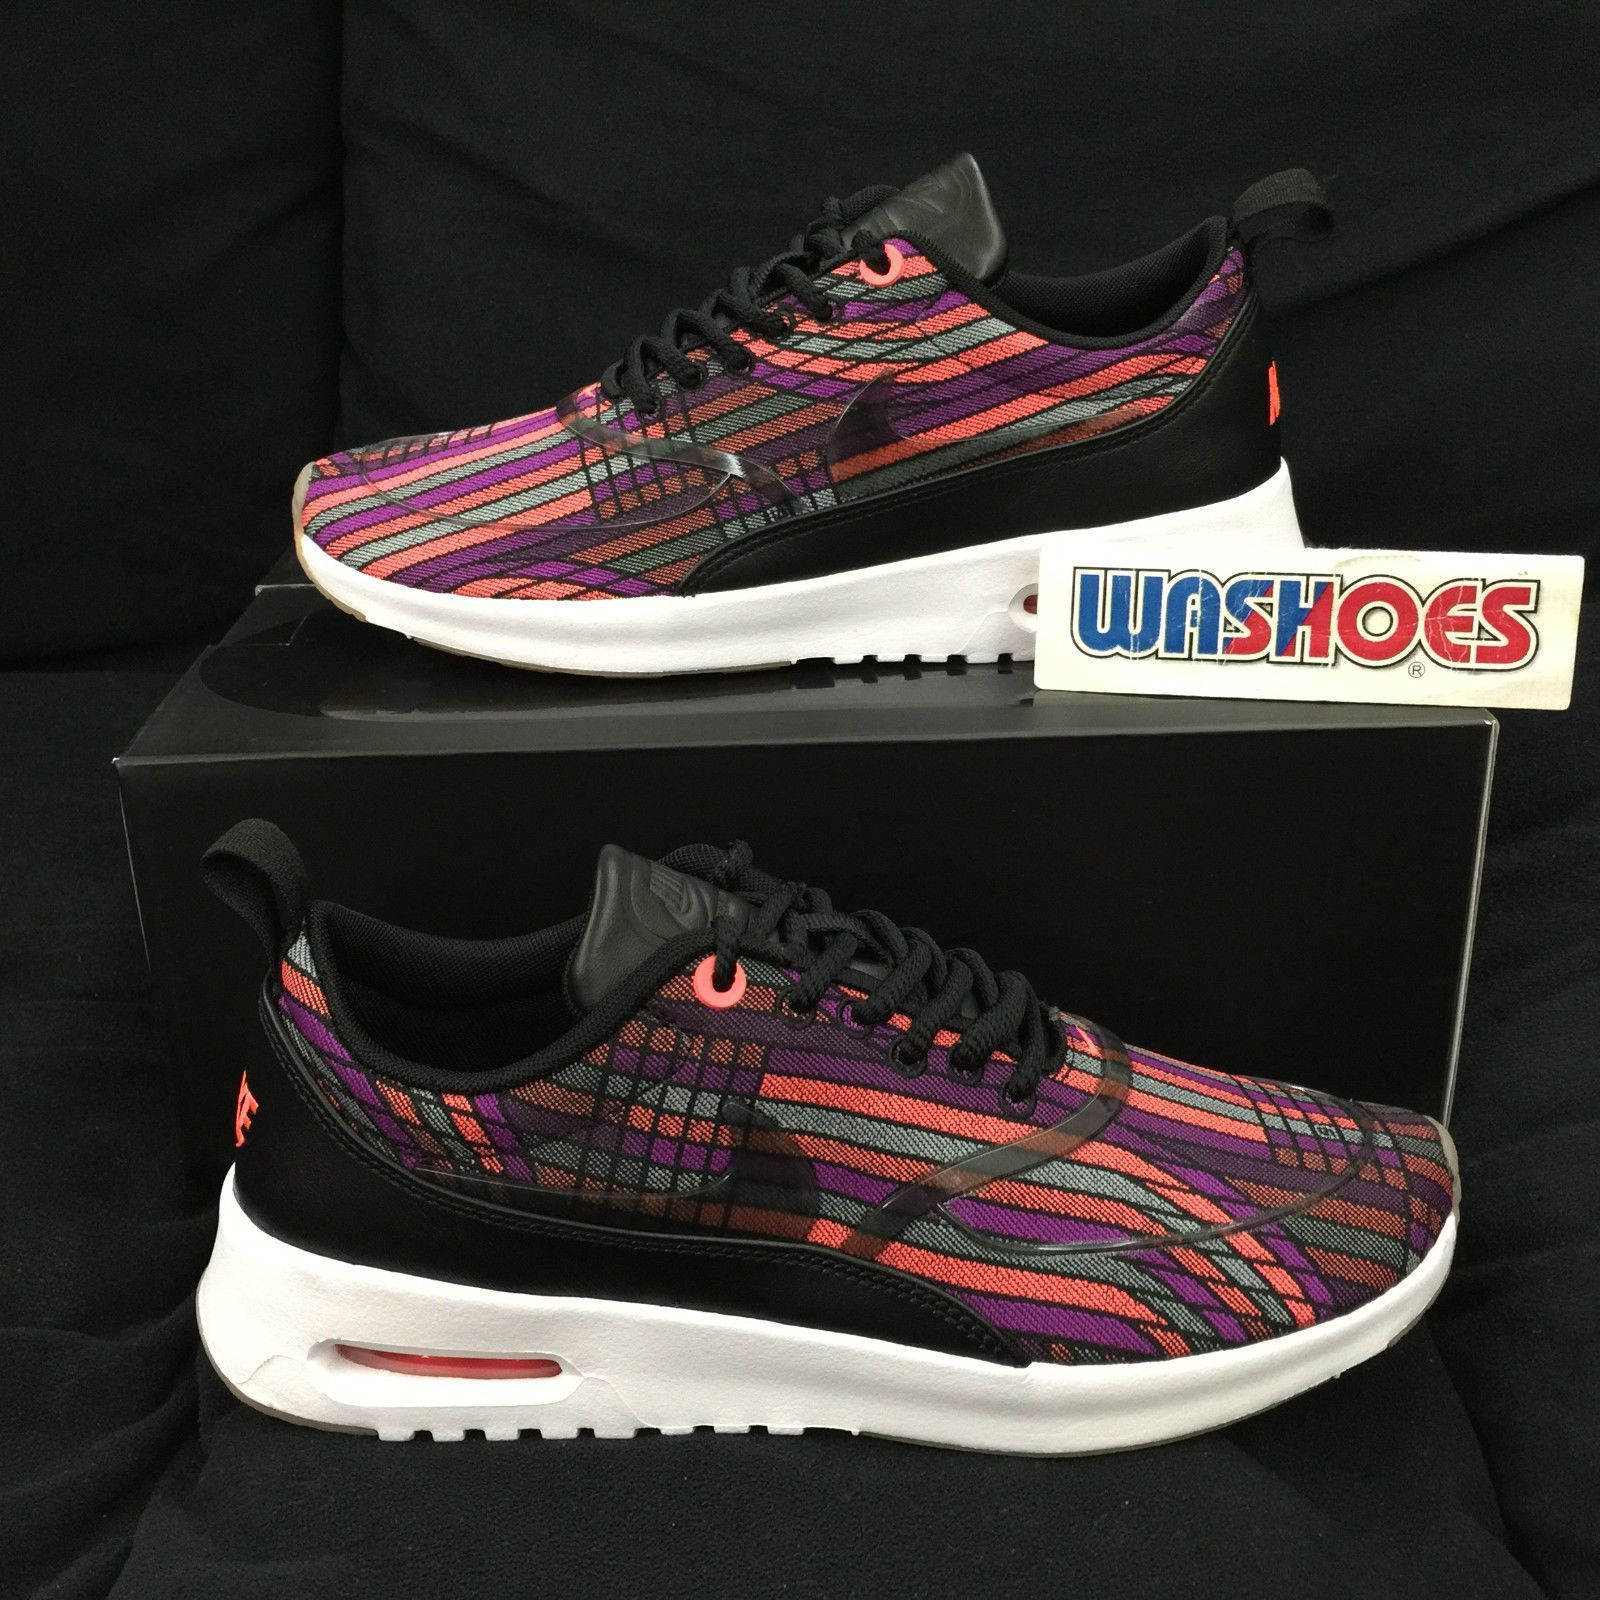 Nike Wmns Beautiful x Powerful Air Max Thea Ultra JCRD PRM 885021 001 US 6  8 5